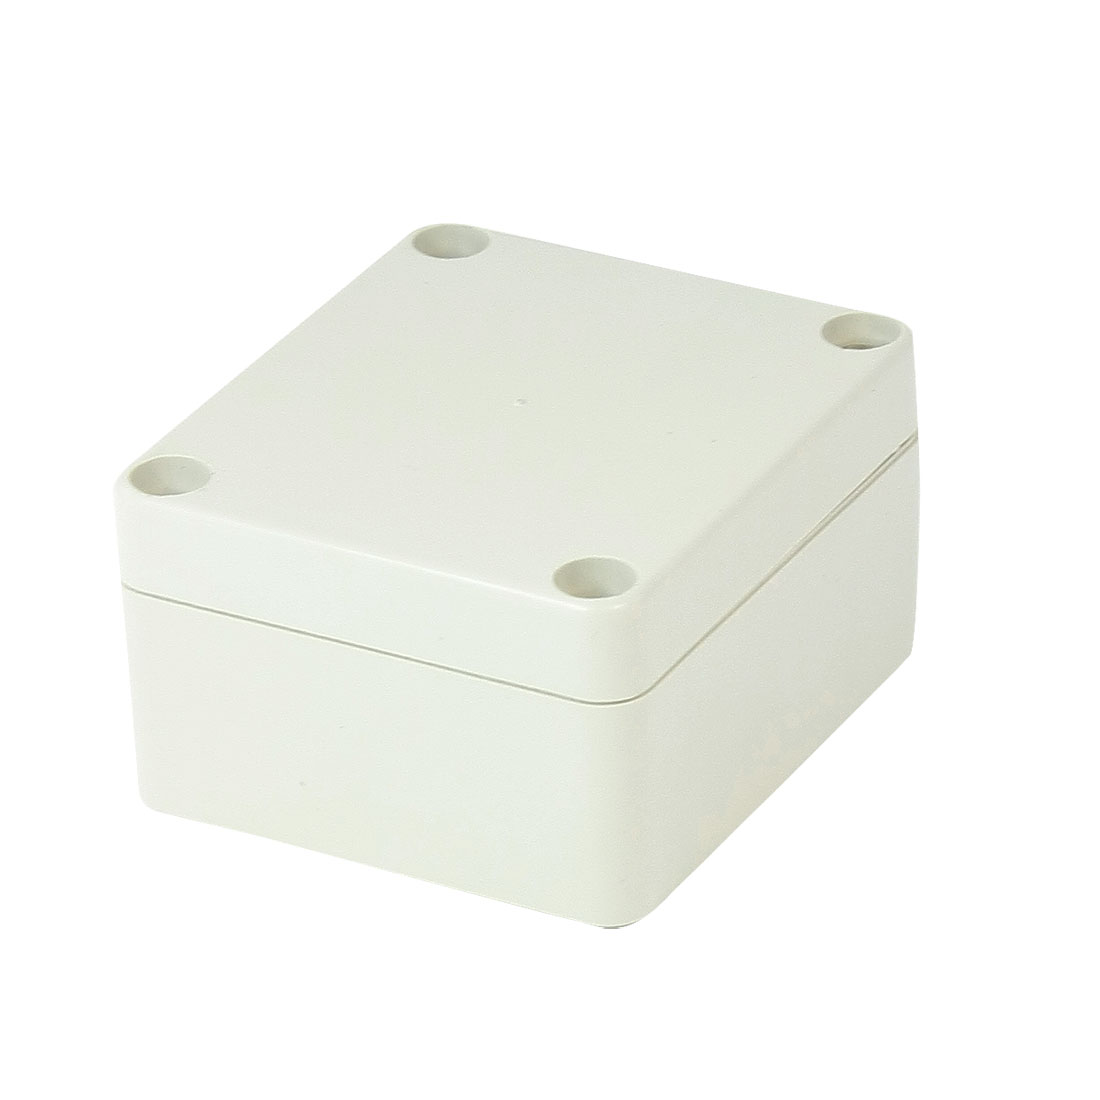 65mm x 58mm x 35mm Plastic Enclosure Case DIY Junction Box Grey